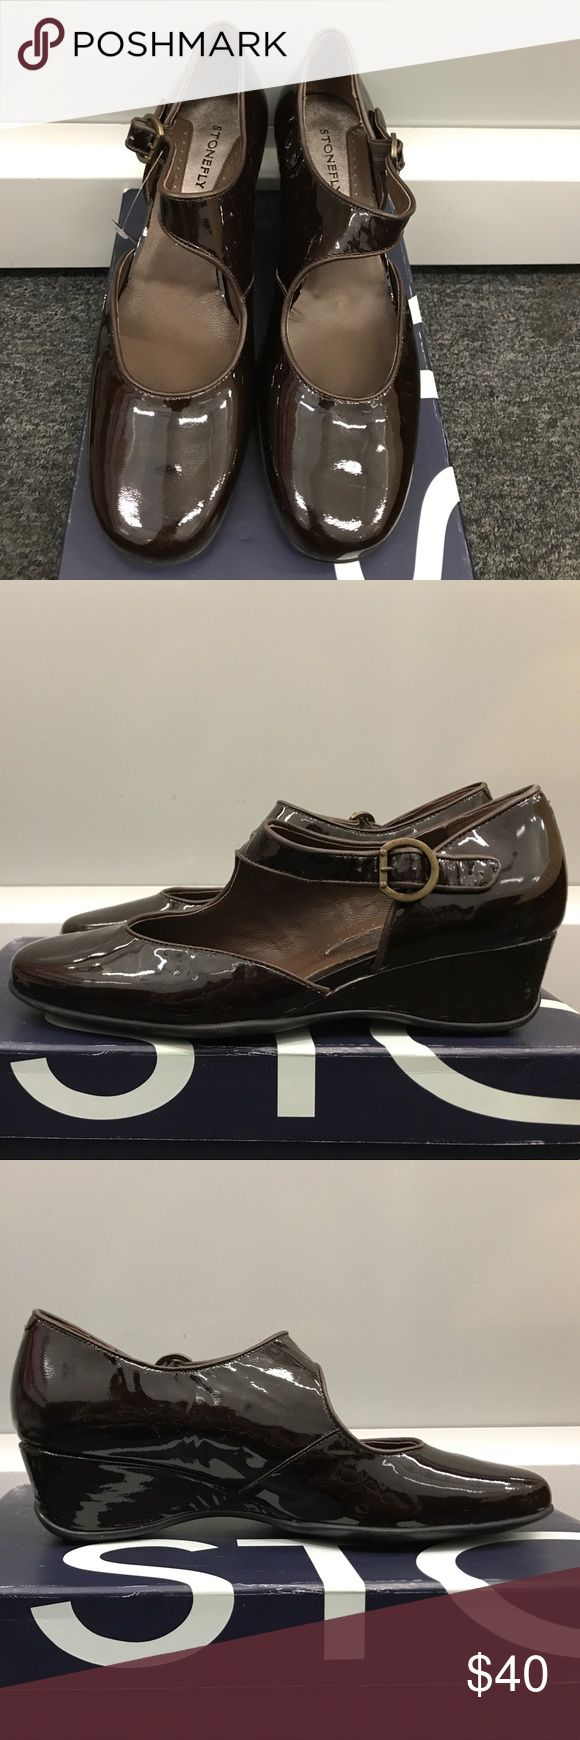 """Stonefly Sonja Women shoes Size 10 Stonefly Sonja Women shoes Size 10. New without box. Leather Upper. Heel heigh: 2"""". Please ask if you have any questions. Stonefly Shoes Flats & Loafers"""